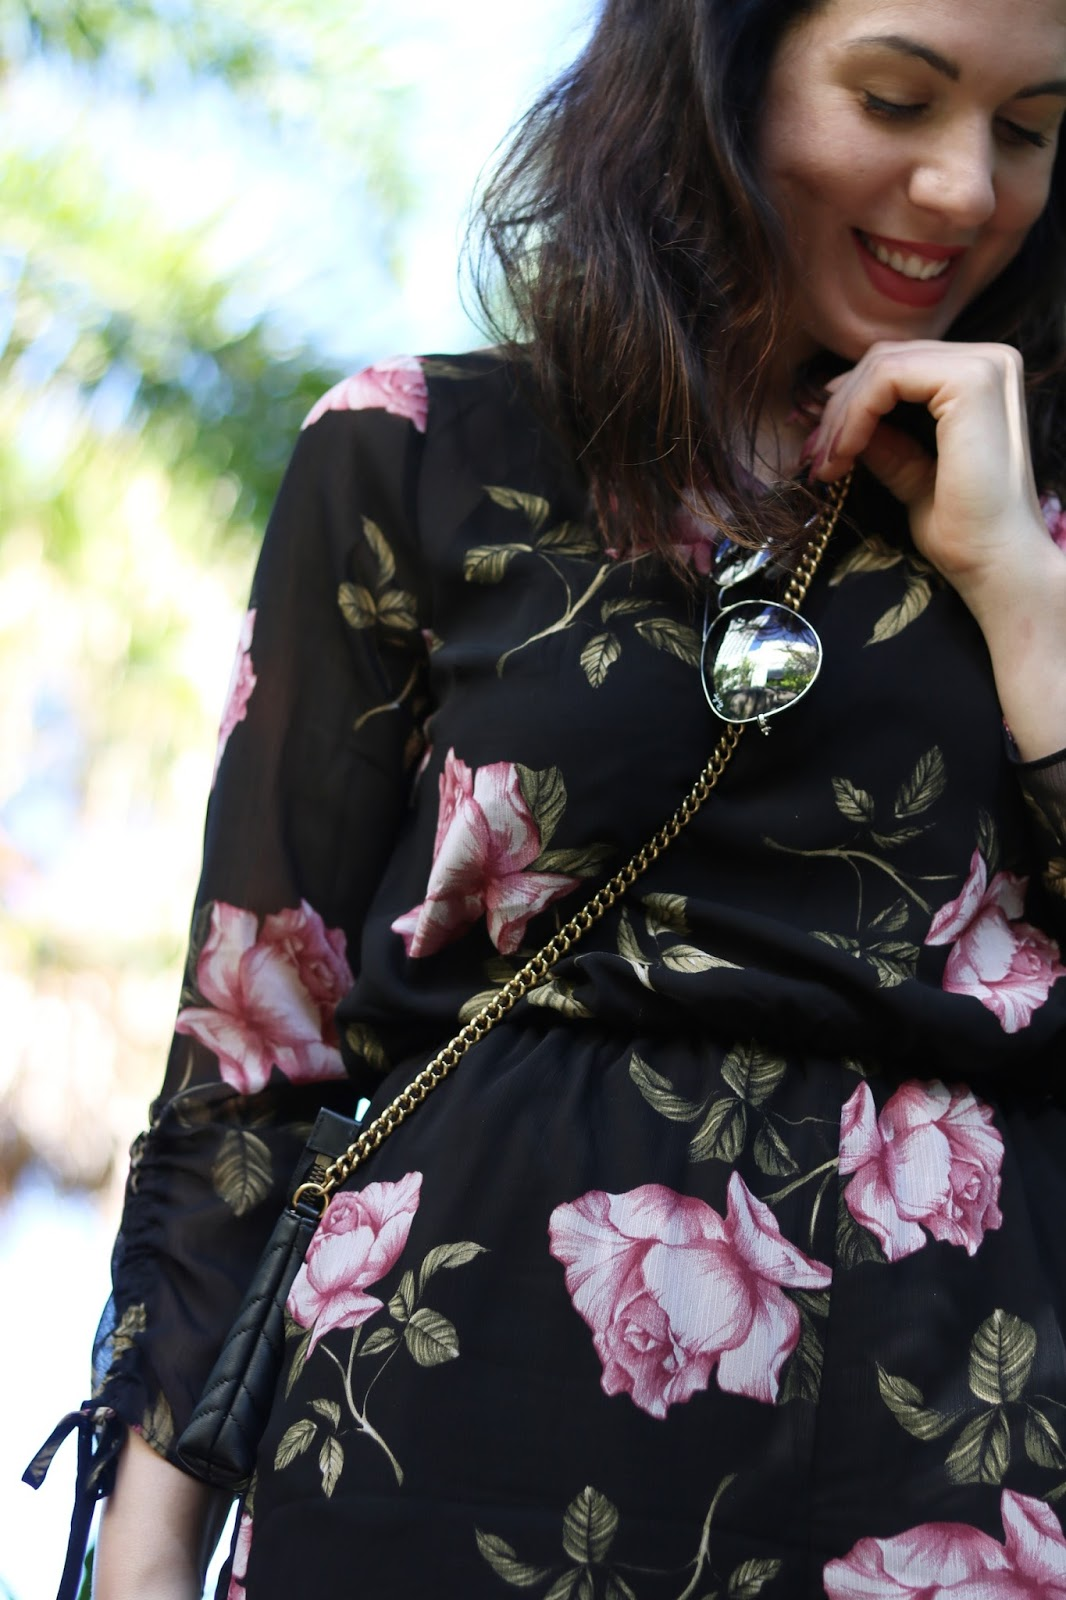 Dynamite floral romper summer travel outfit vancouver fashion blogger